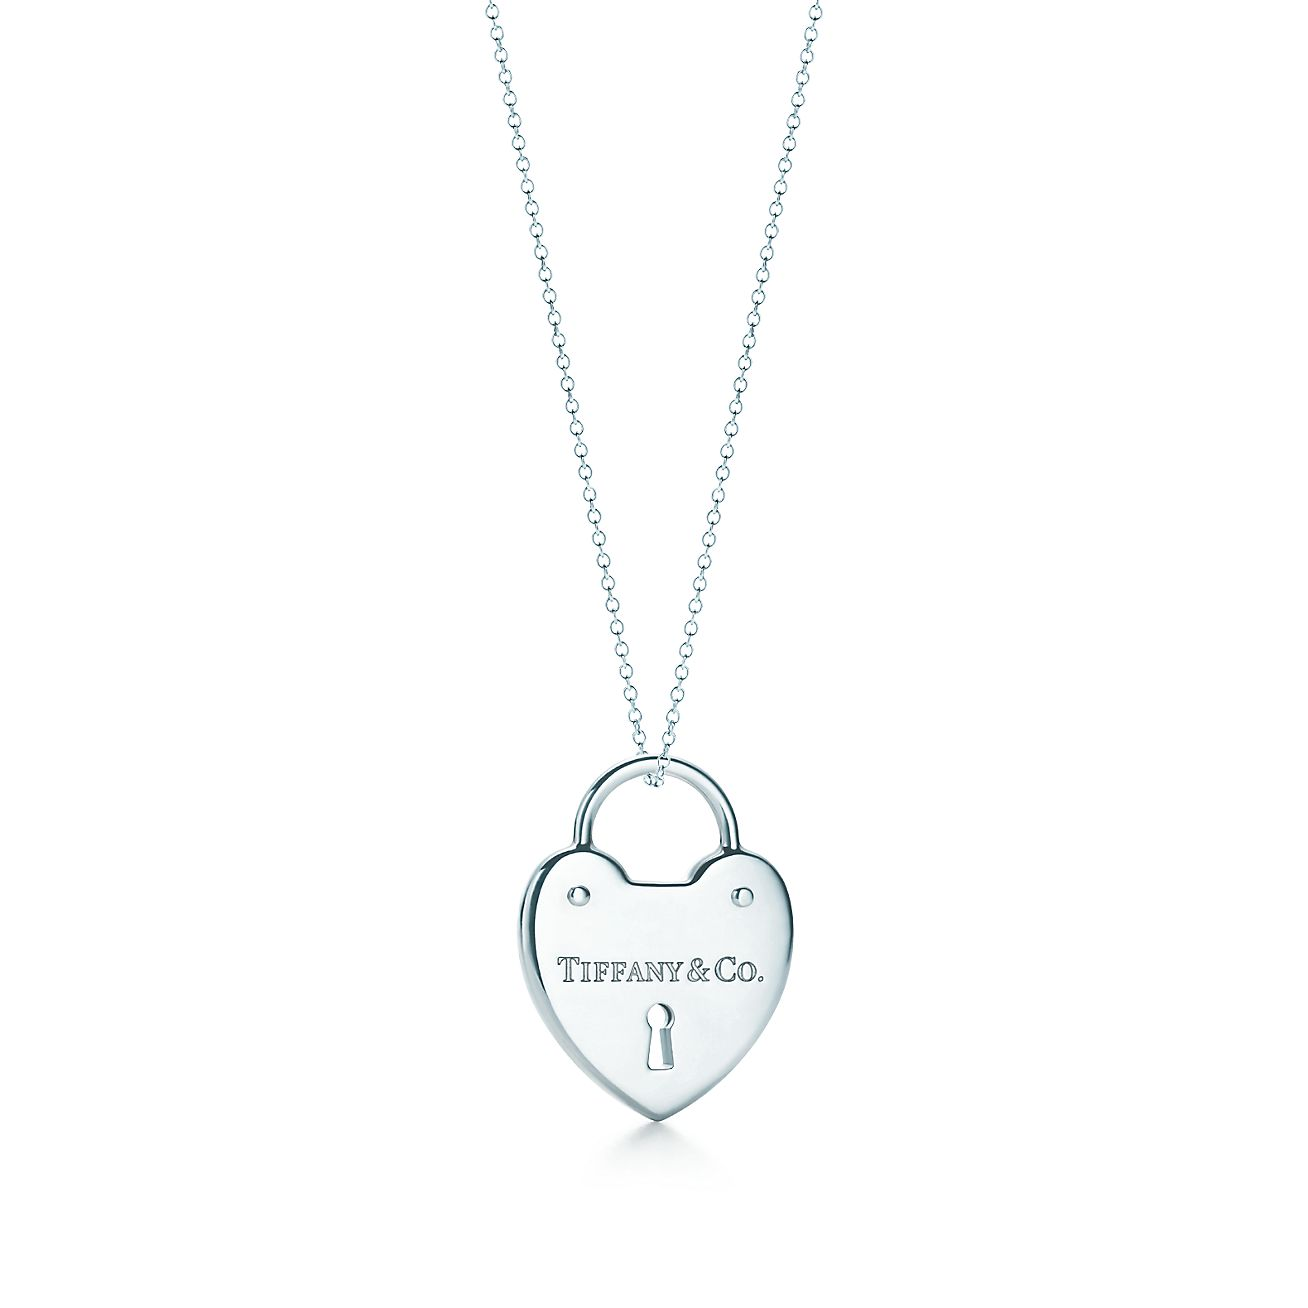 Tiffany locks heart lock pendant in sterling silver on a chain tiffany locksheart lock pendant aloadofball Images